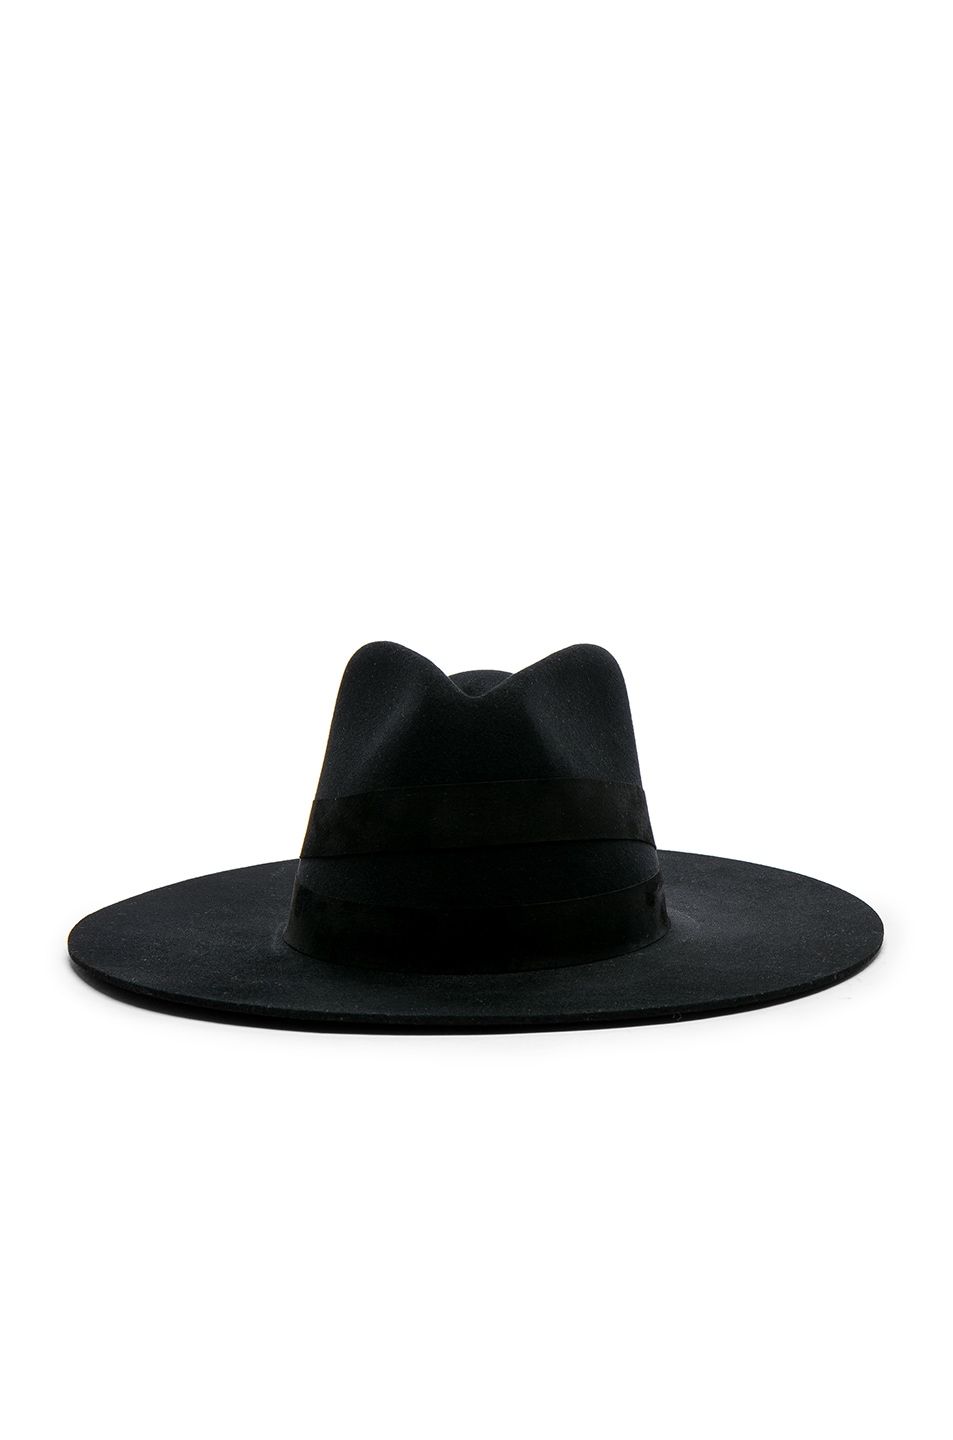 Image 1 of Janessa Leone Deux Fedora Hat in Black